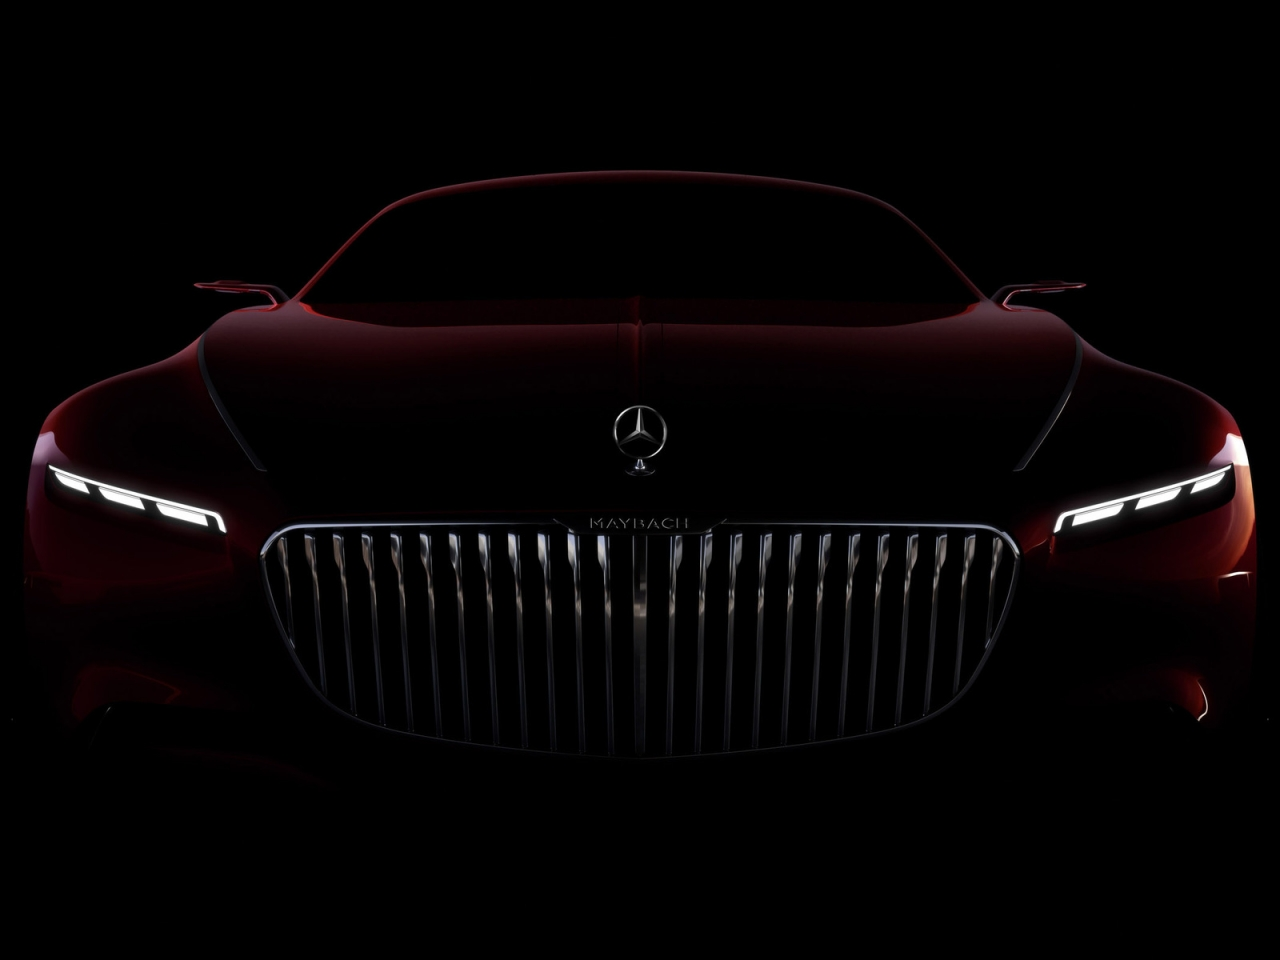 Amazing Vision Mercedes Maybach 6 2016 for 1280 x 960 resolution